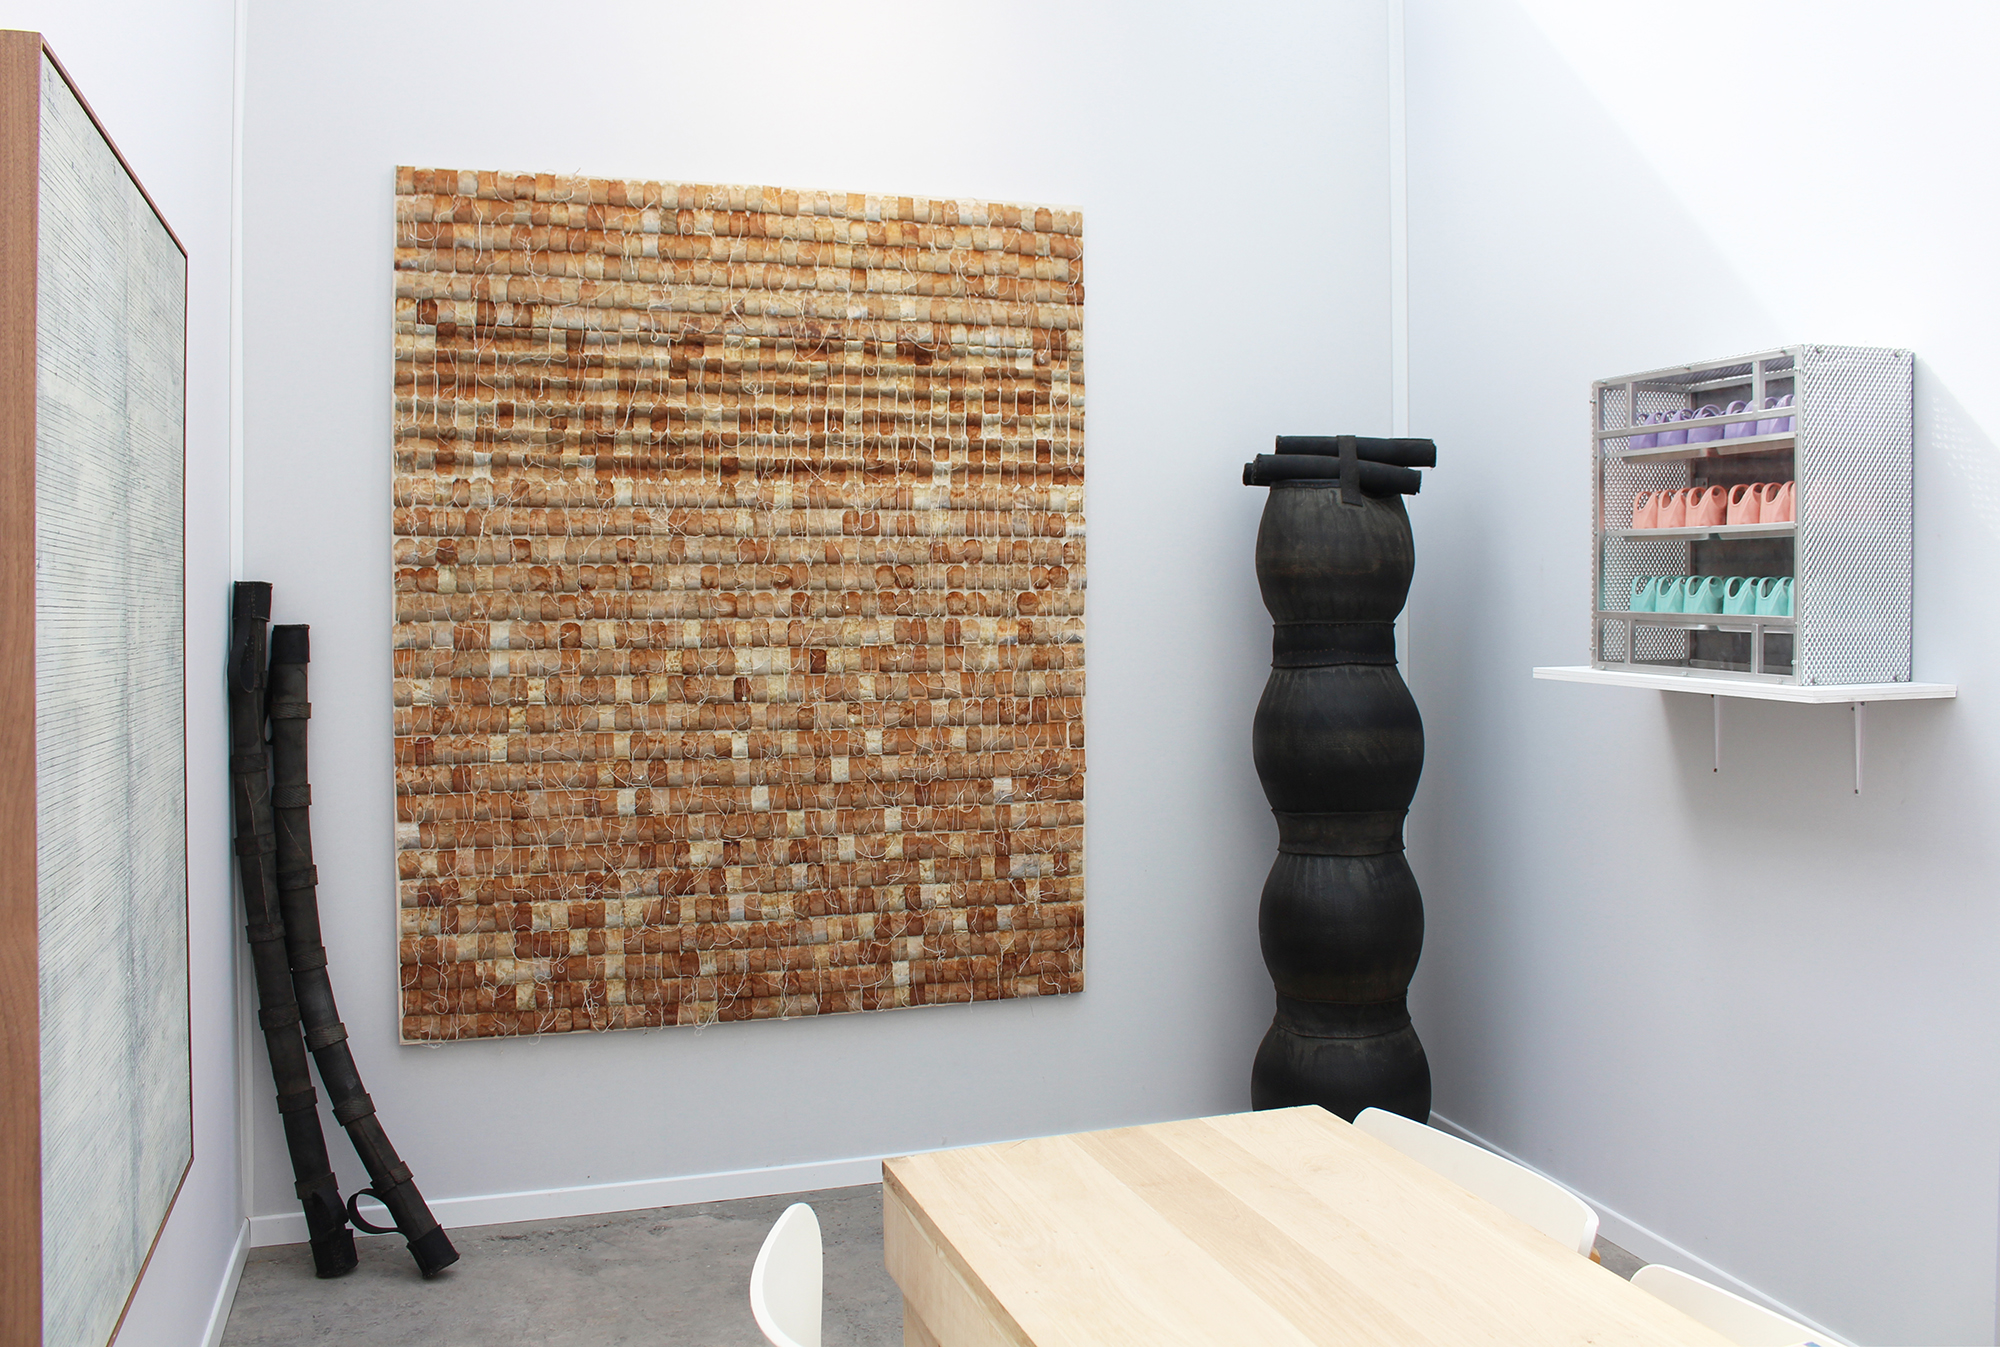 Sobering Galerie at Art Paris Art Fair (booth E13), exhibition view, March 30th - April 2nd 2017, on the wall from left to right: Alexandra Hopf, Armén Rotch, Pierre Petit / on the floor : François Arna